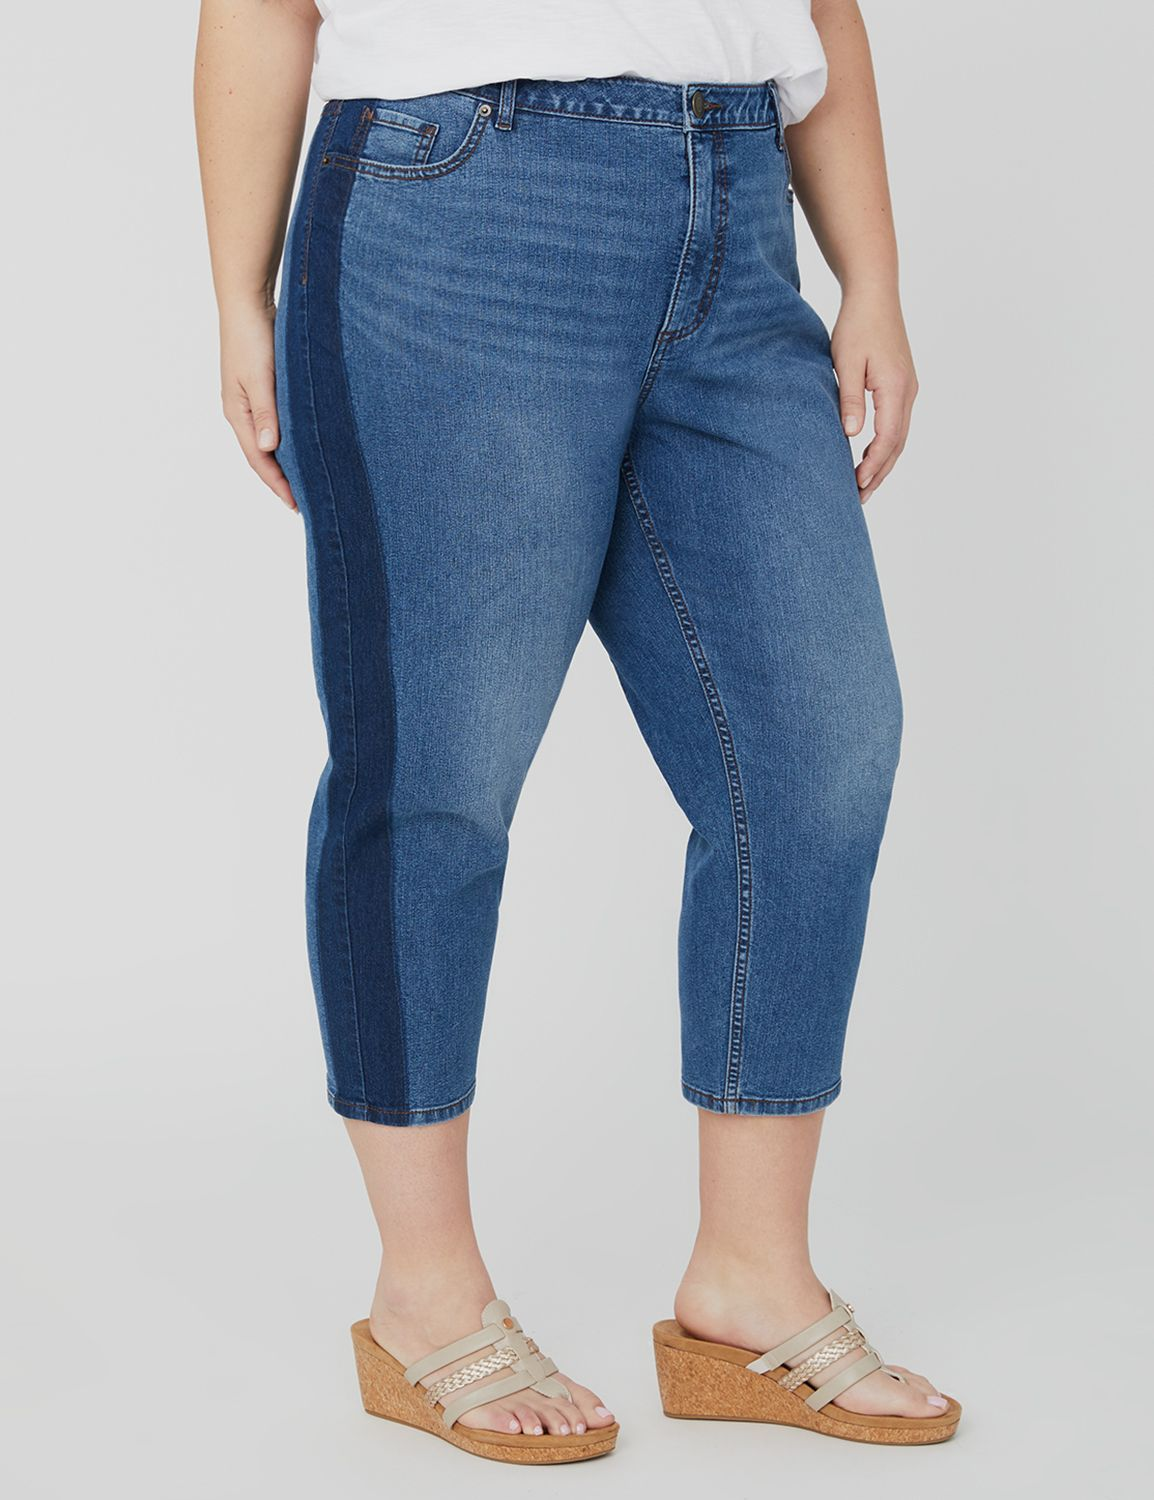 Jean Capri with Dark-Wash Stripe 1088046 2-TONE DENIM WASH ON SIDE S MP-300099566